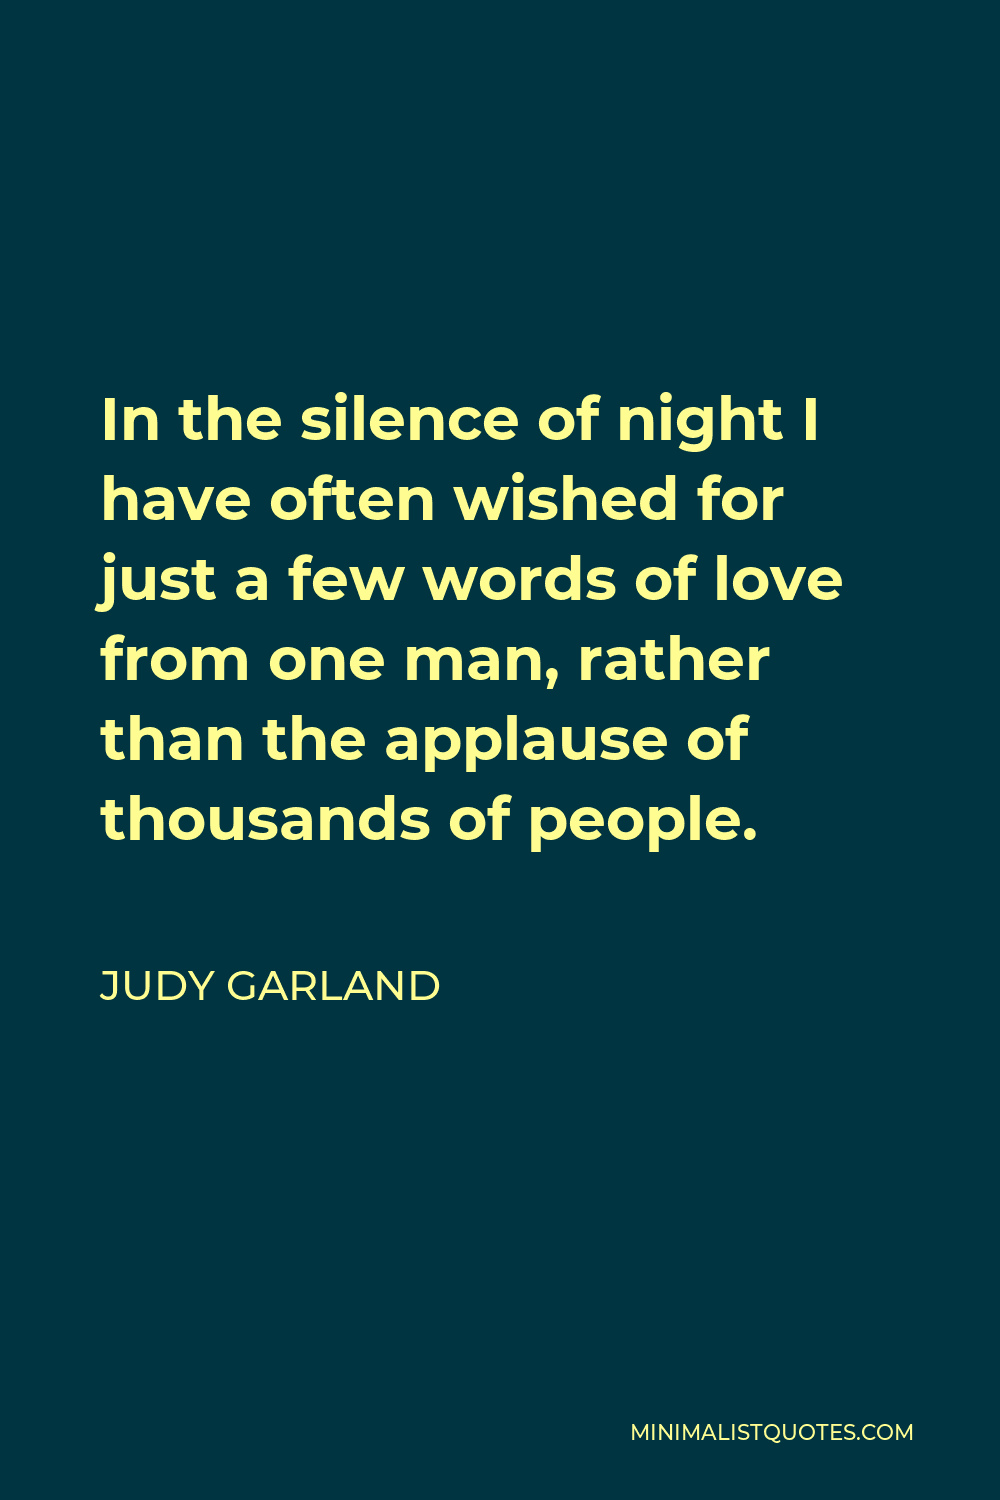 Judy Garland Quote - In the silence of night I have often wished for just a few words of love from one man, rather than the applause of thousands of people.